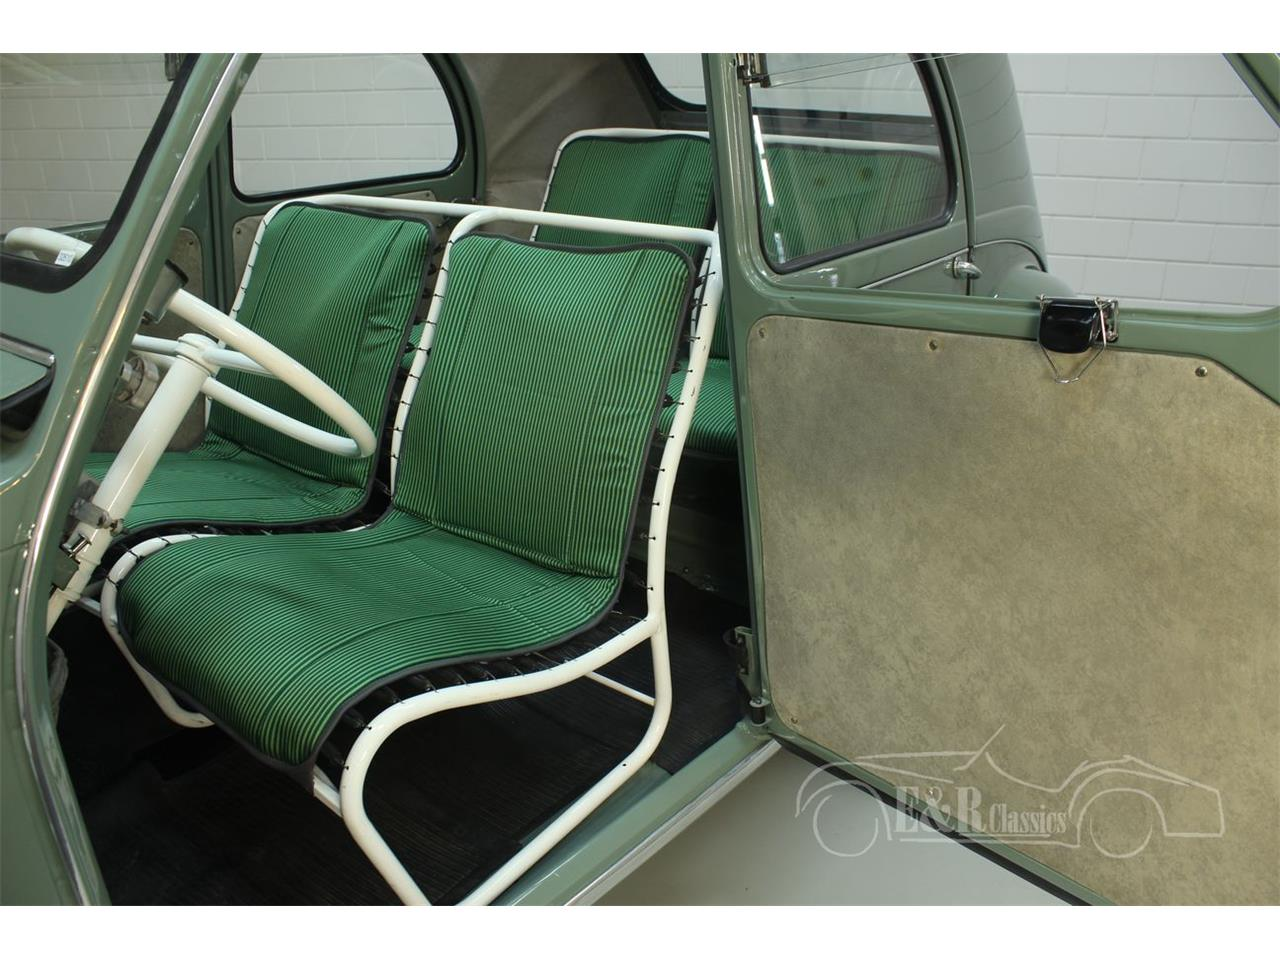 Large Picture of '57 2CV located in - Keine Angabe - - $34,000.00 Offered by E & R Classics - PCQ6